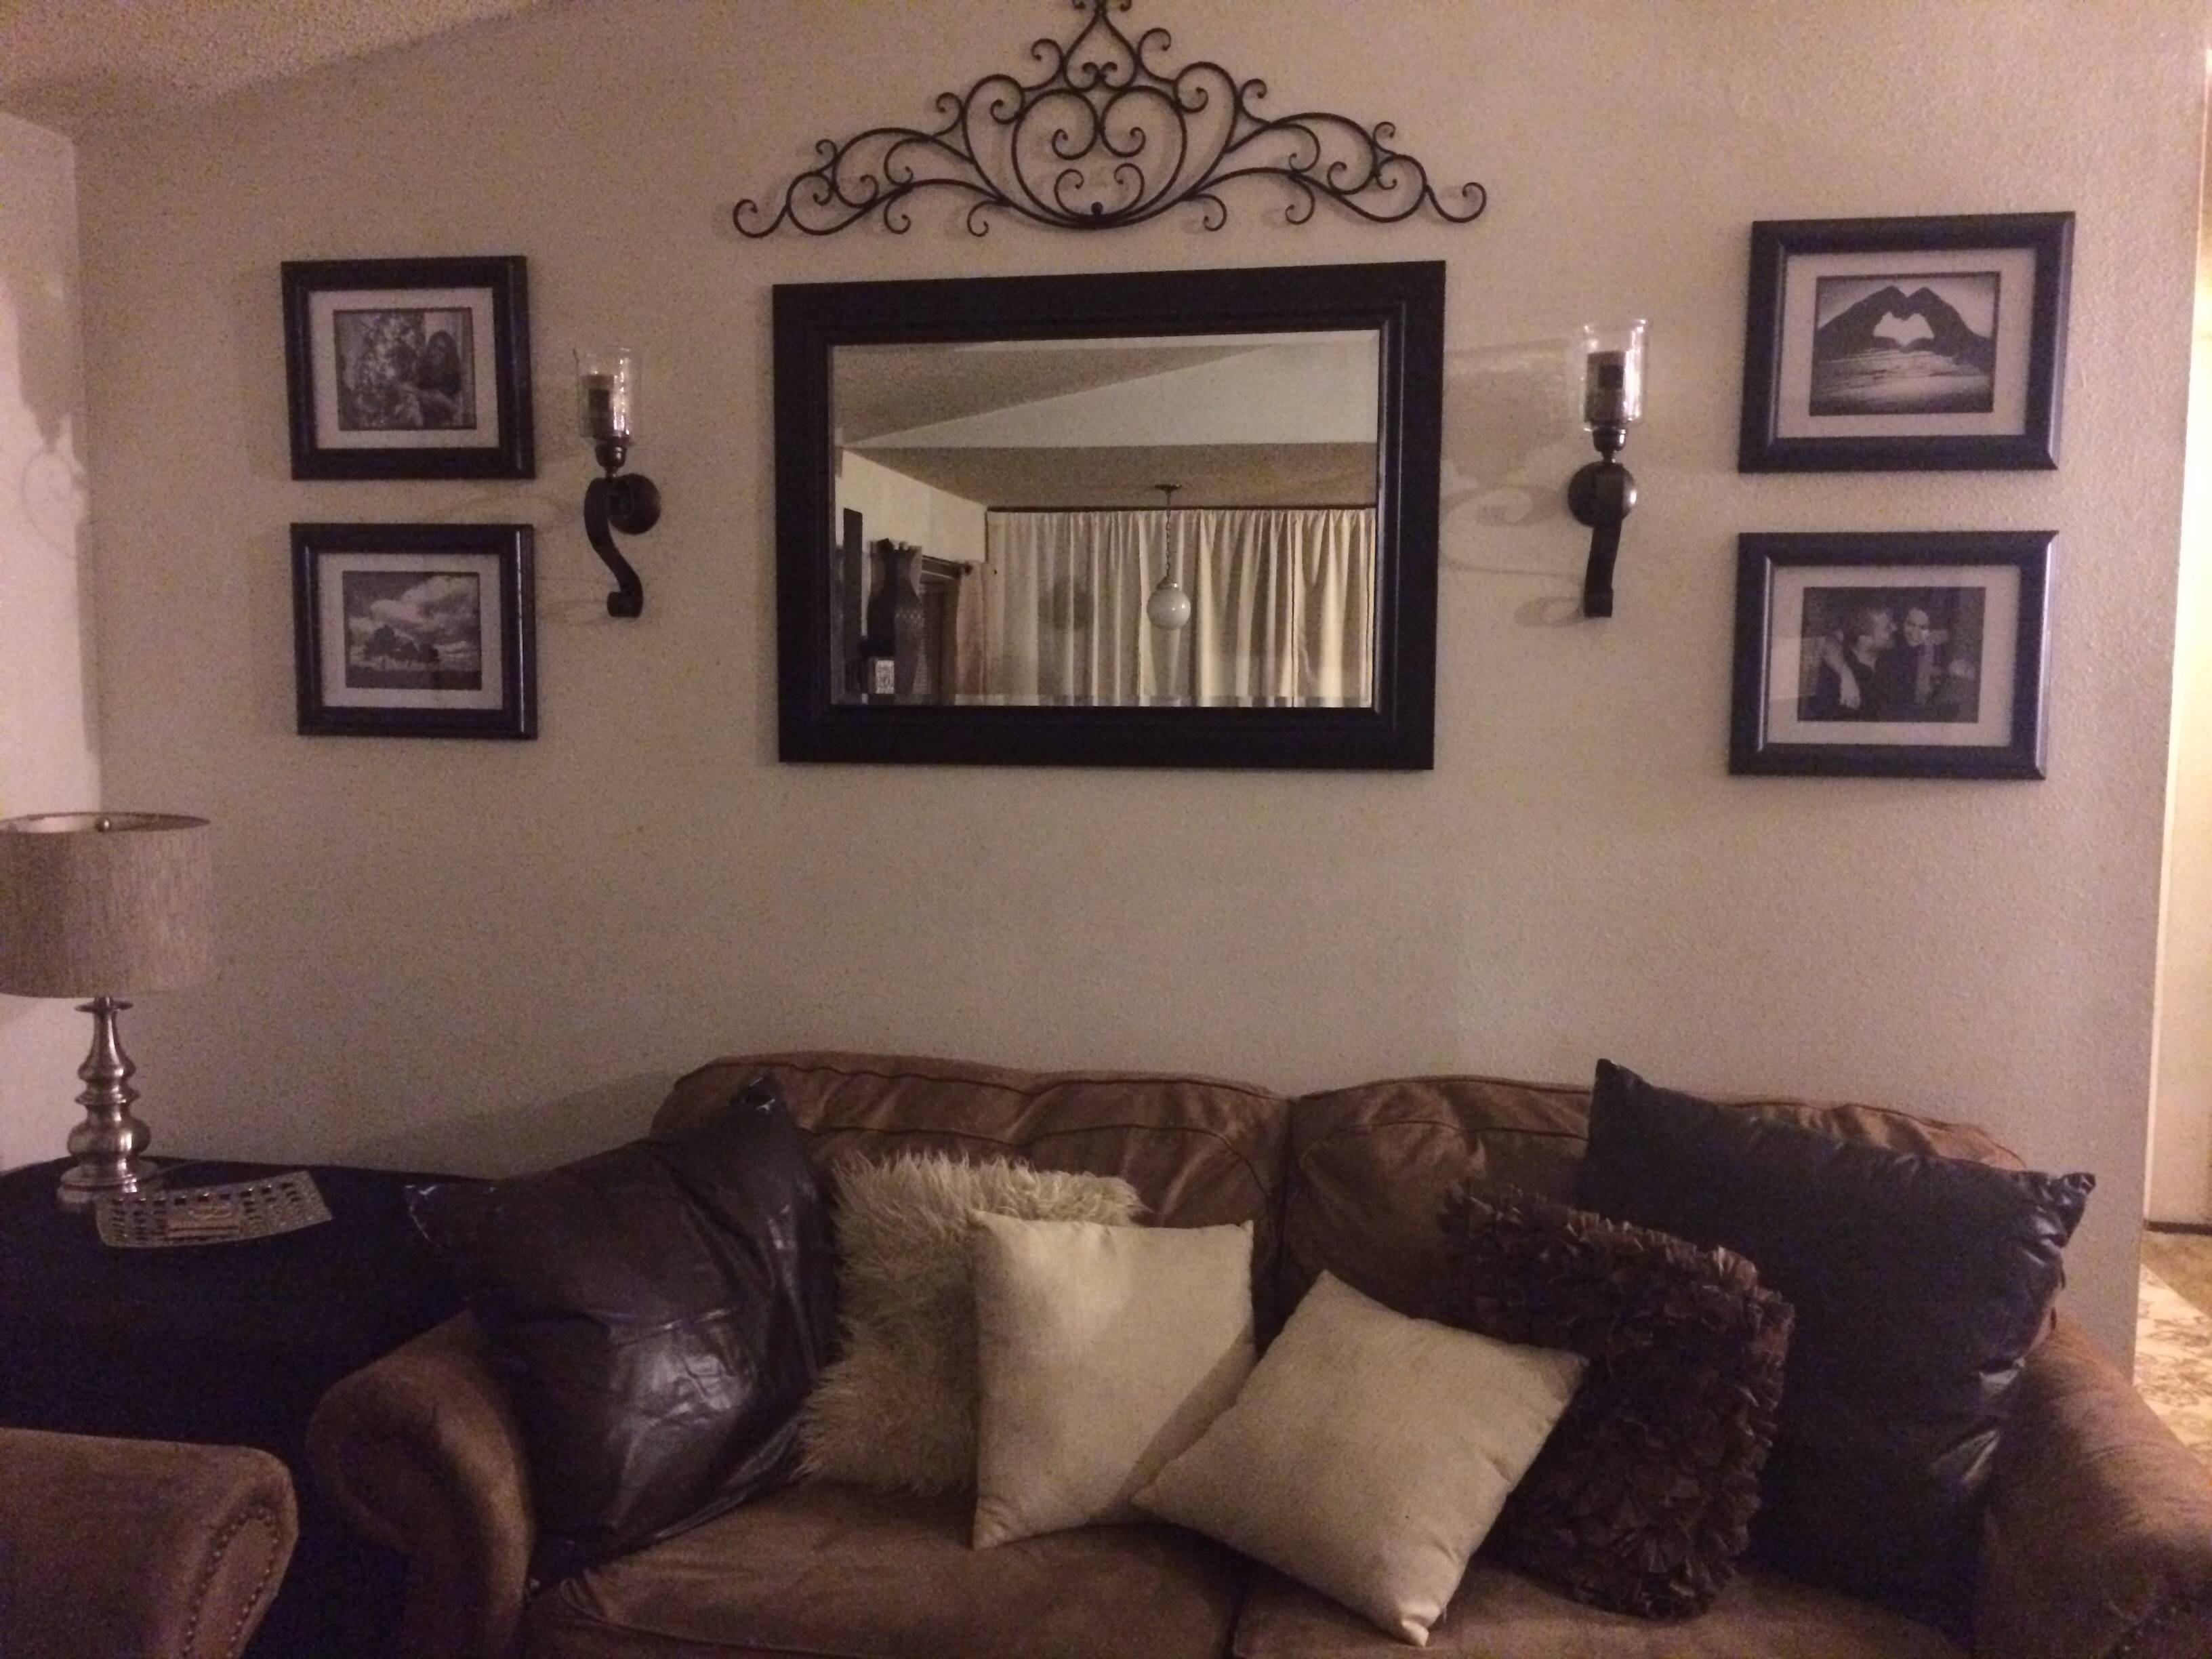 Decor : 61 Handmade Premium Metal Mirror Wall Art Materia High With Regard To Most Recent Metal Wall Art For Living Room (View 6 of 20)